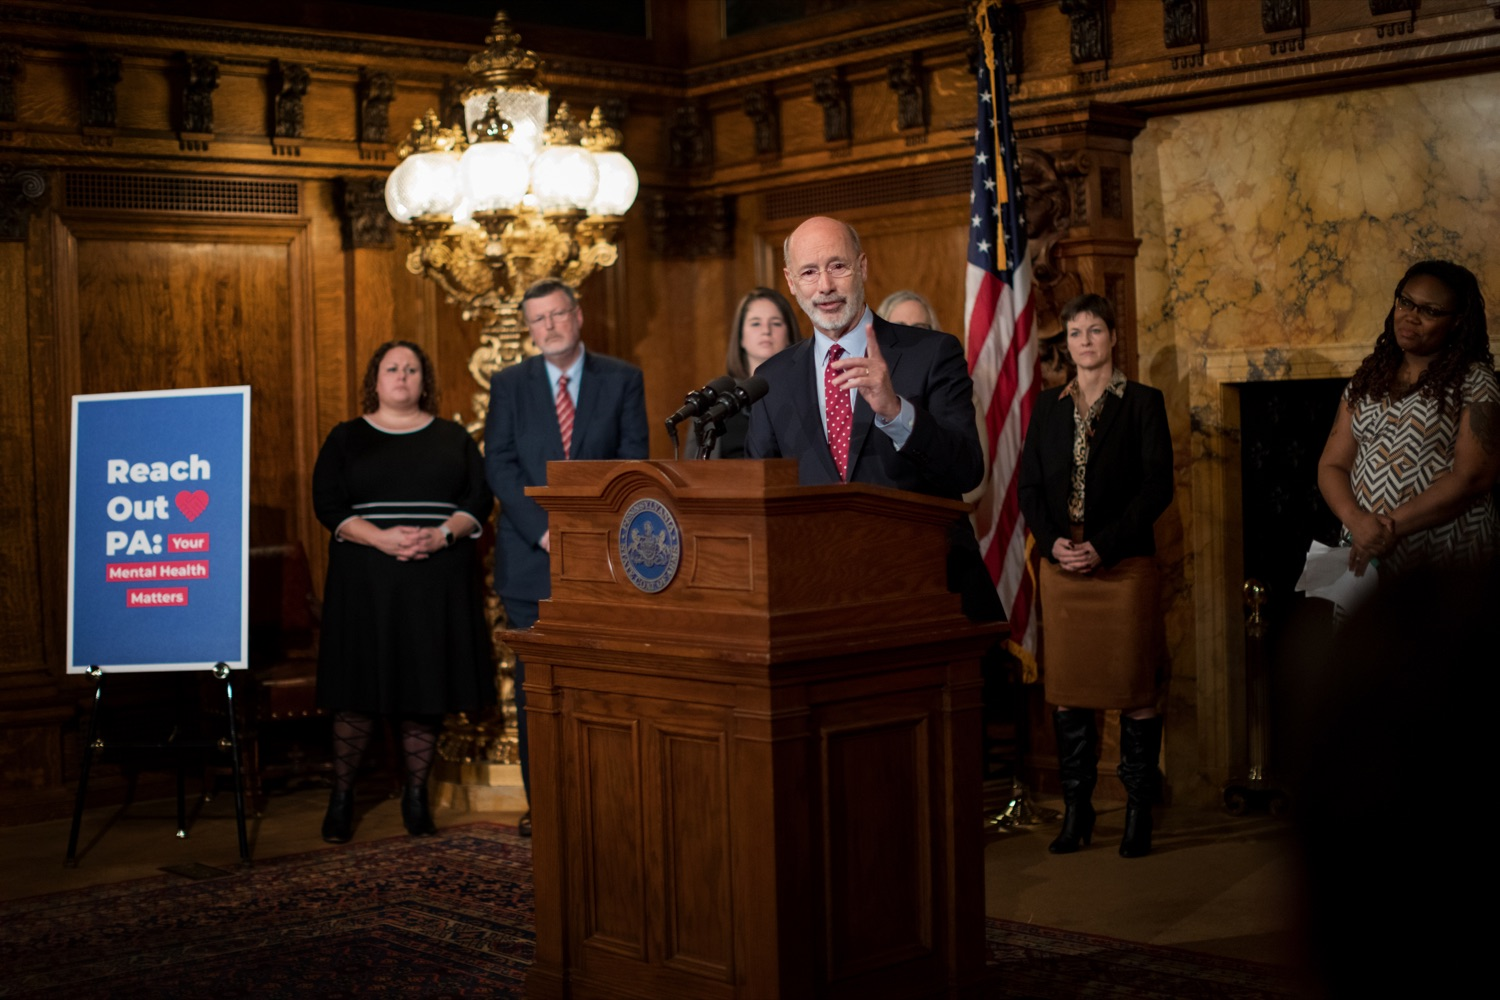 "<a href=""https://filesource.wostreaming.net/commonwealthofpa/photo/17694_GOV_Mental_Health_NK_009.JPG"" target=""_blank"">⇣ Download Photo<br></a>Pennsylvania Governor Tom Wolf speaks during a press conference inside the Governor's Reception Room at the State Capitol building in Harrisburg on Thursday, January 2, 2020. Governor Wolf announced a focused all-agency effort and anti-stigma campaign, Reach Out PA: Your Mental Health Matters, aimed at expanding resources and the states comprehensive support of mental health and related health care priorities in Pennsylvania."